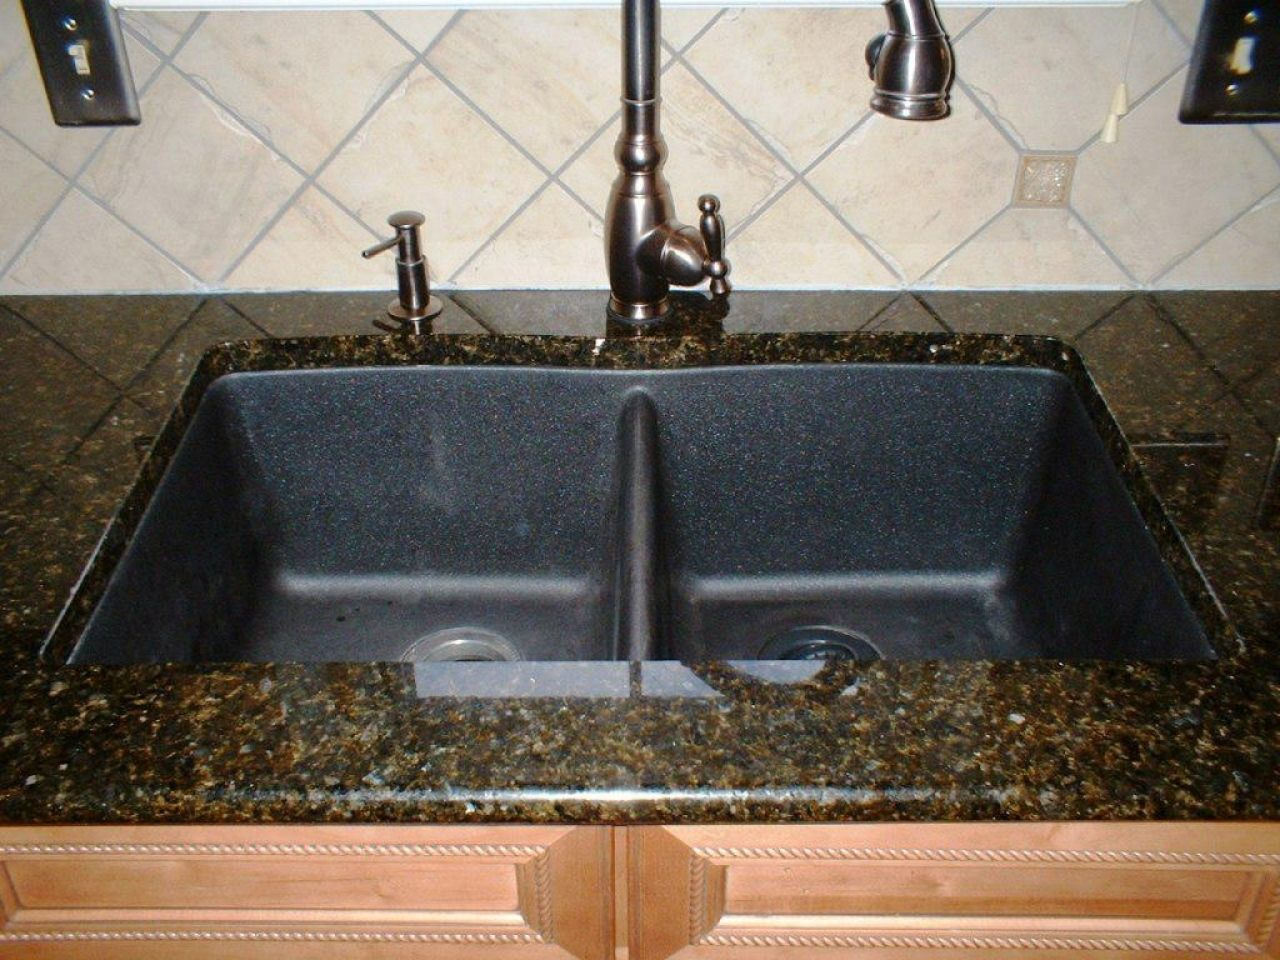 Swanstone Kitchen Sinks Colors | http://yonkou-tei.net | Pinterest ...